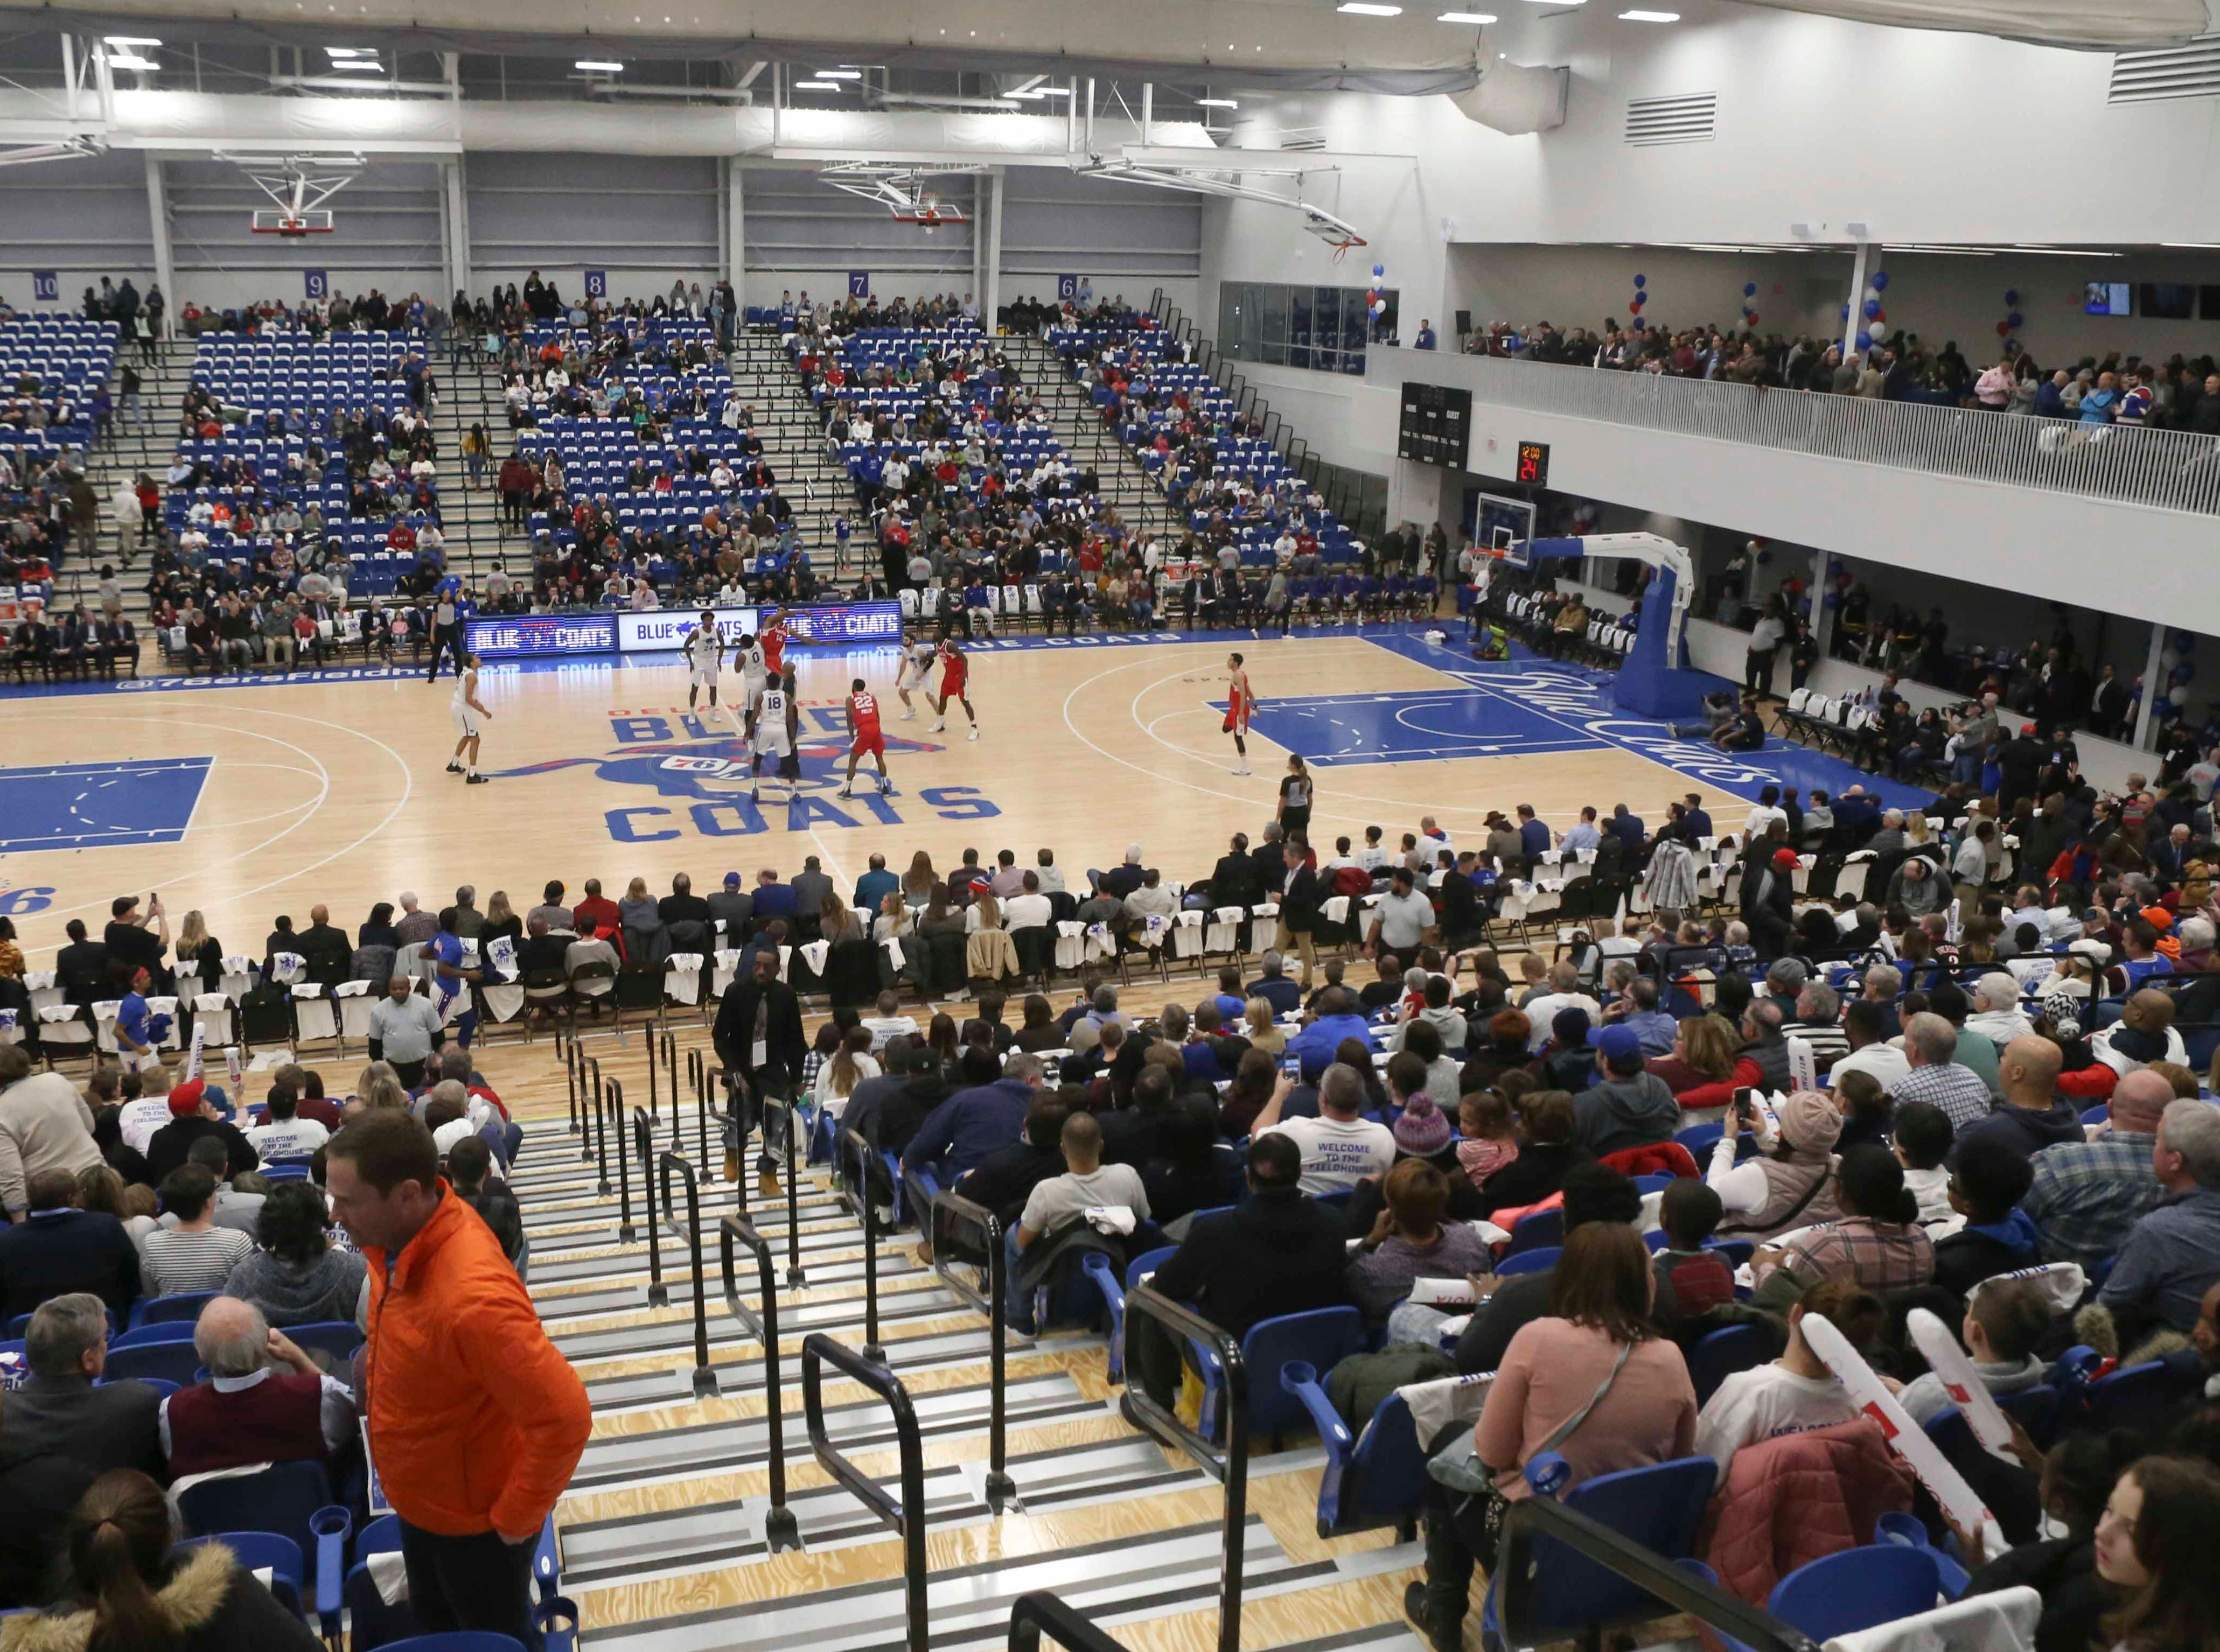 Tipoff finds the crowd still entering the arena as soon-to-be-rectified traffic snarls outside slow things down as the Delaware Blue Coats of the NBA G-League open the 76ers Field House in Wilmington Wednesday.